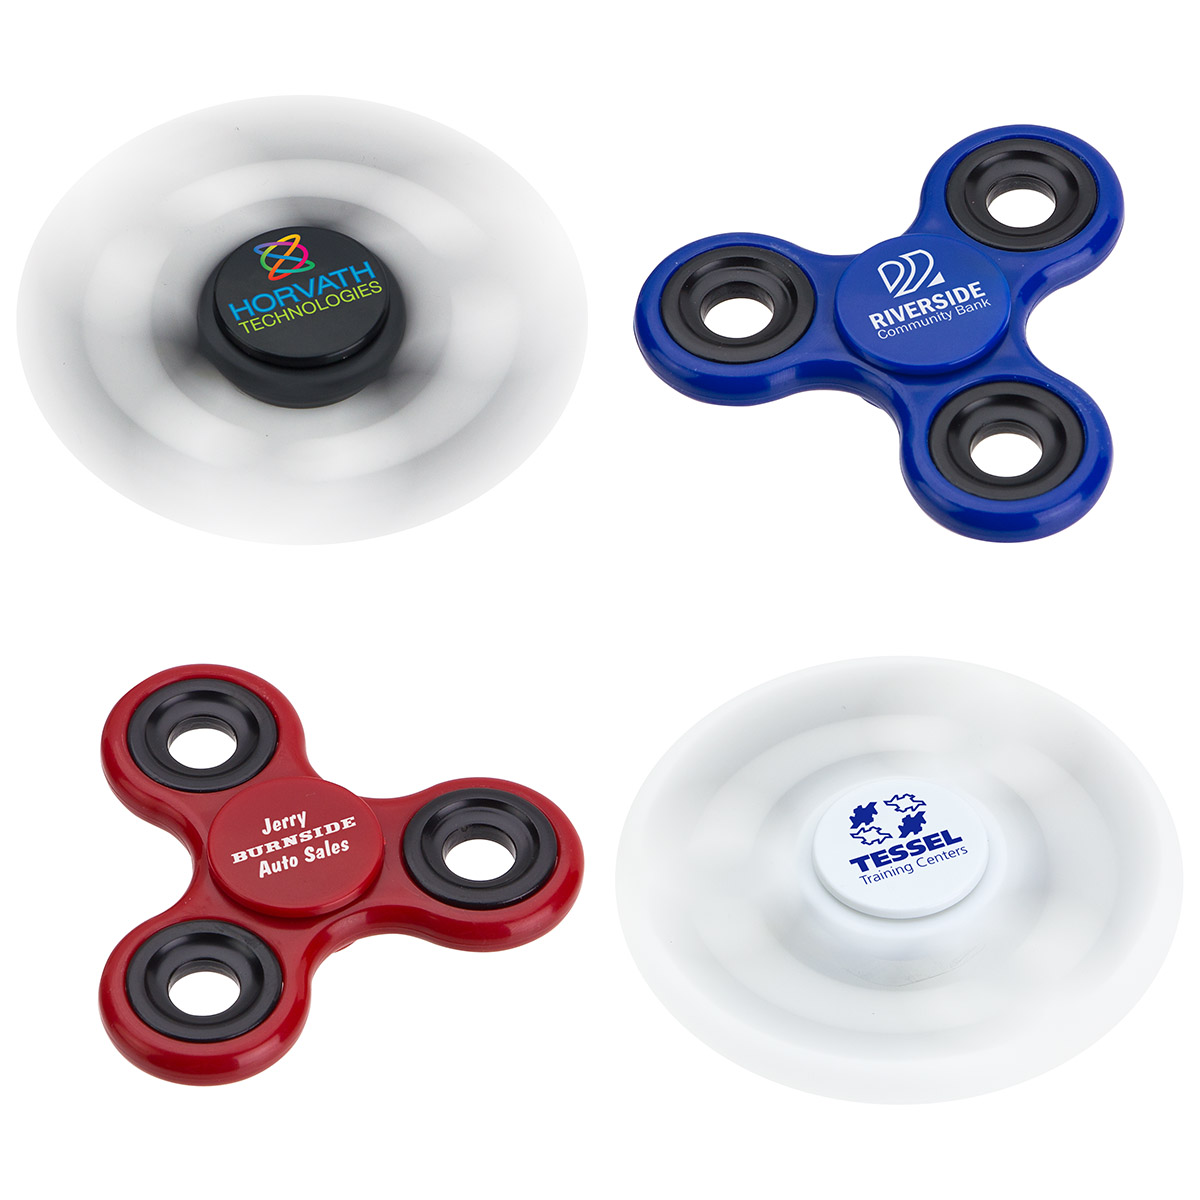 Classic Whirl Spinner, WPC-CW17, 1 Colour Imprint